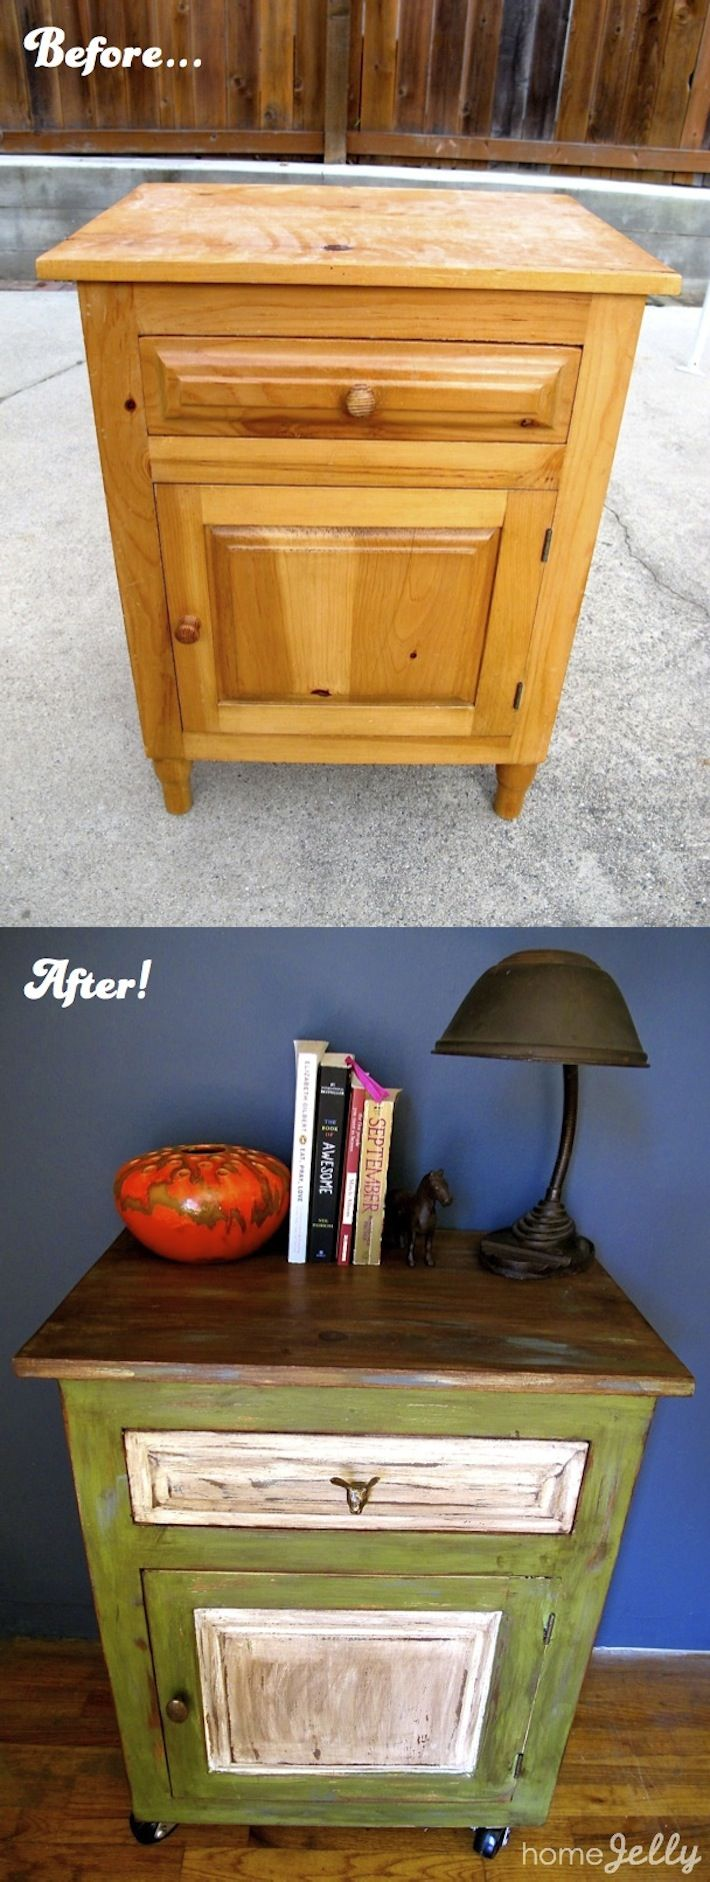 17 best images about recycled rimu on pinterest home for Repurposed furniture before and after